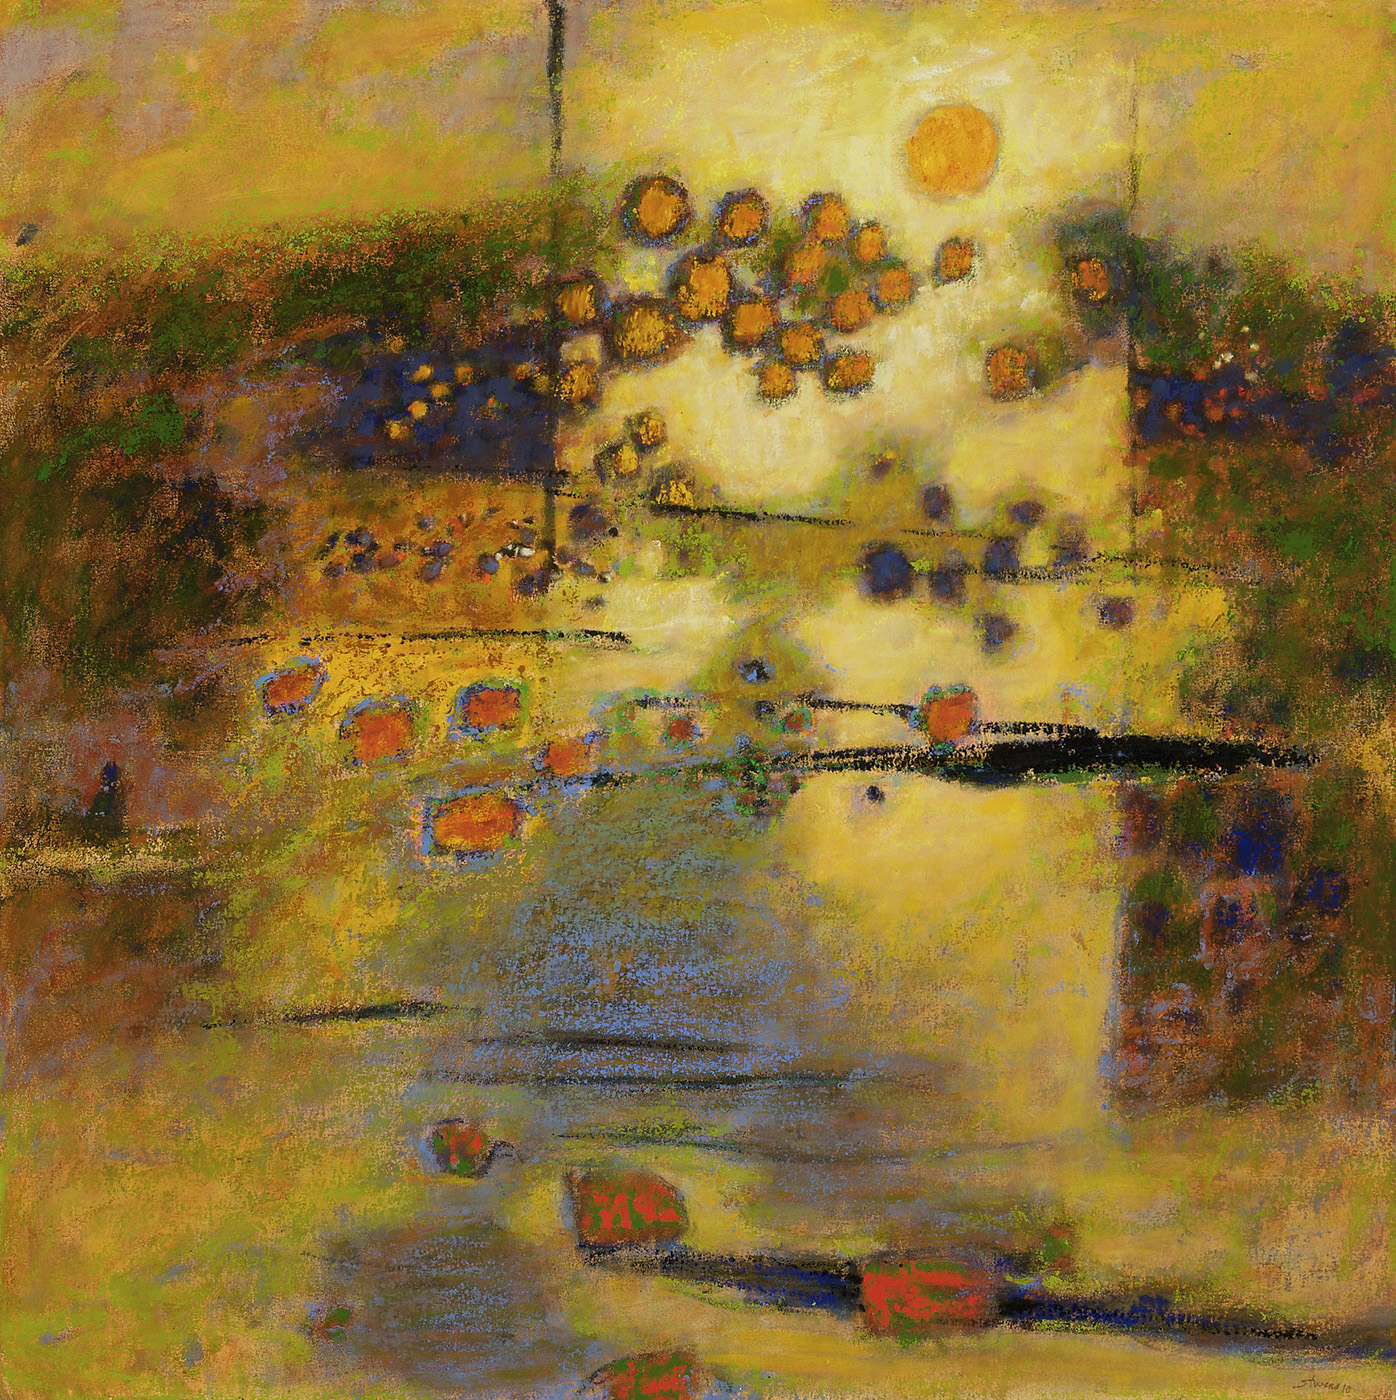 Land of Enchantment   | oil on canvas | 48 x 48"